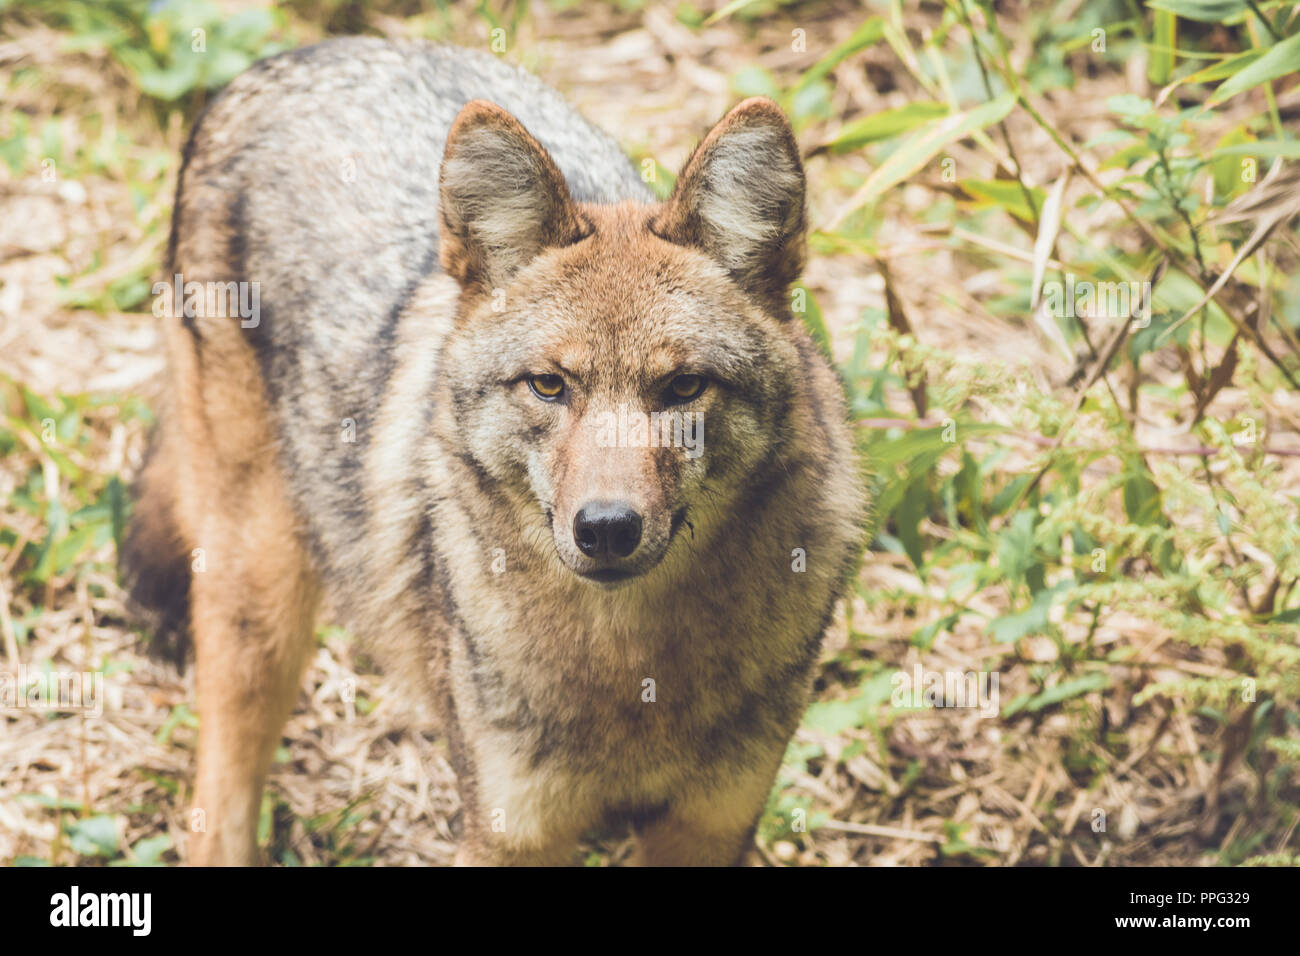 Coyote (Canis latrans) peers through thick green forest canopy in early fall, vintage garden setting - Stock Image